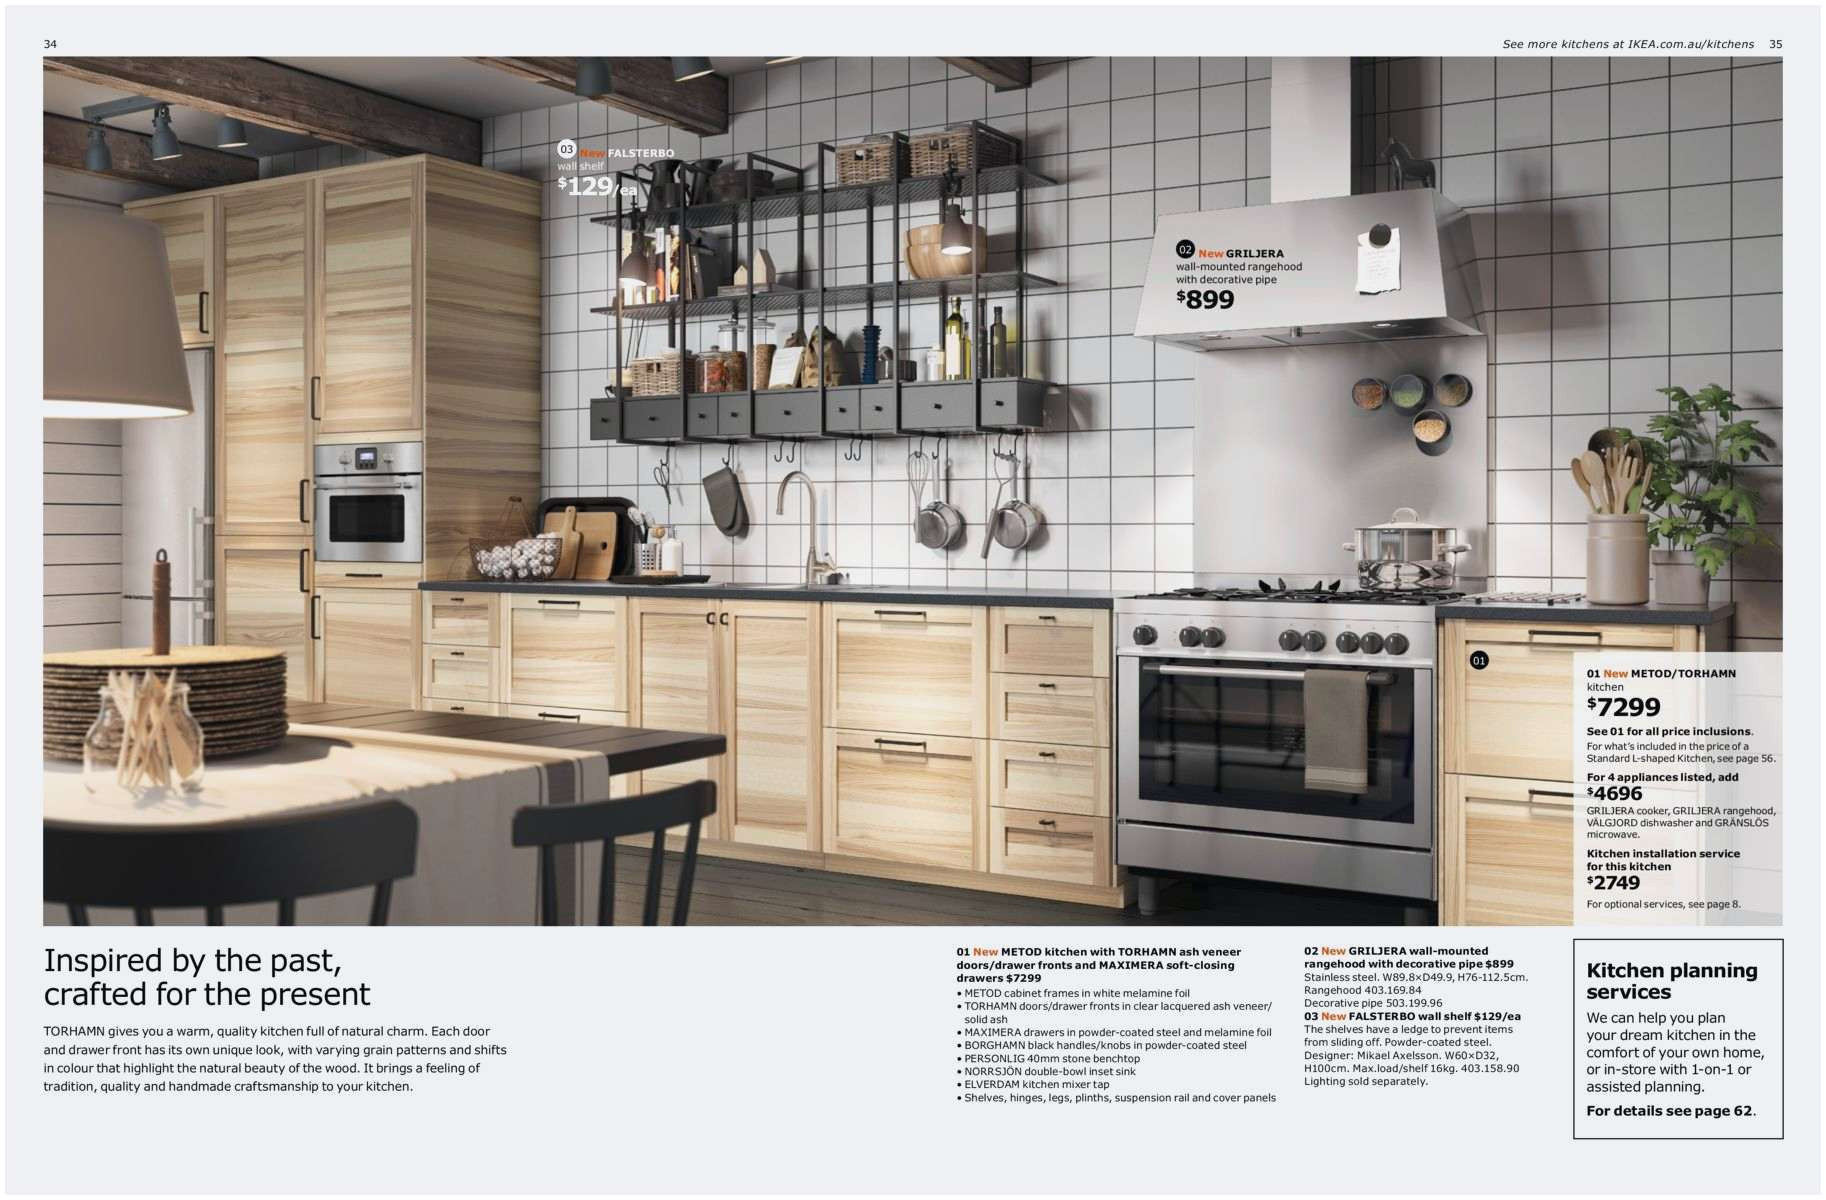 Catalogue Cuisine Ikea Pdf Installing Cover Panel On Ikea Dishwasher | Adinaporter